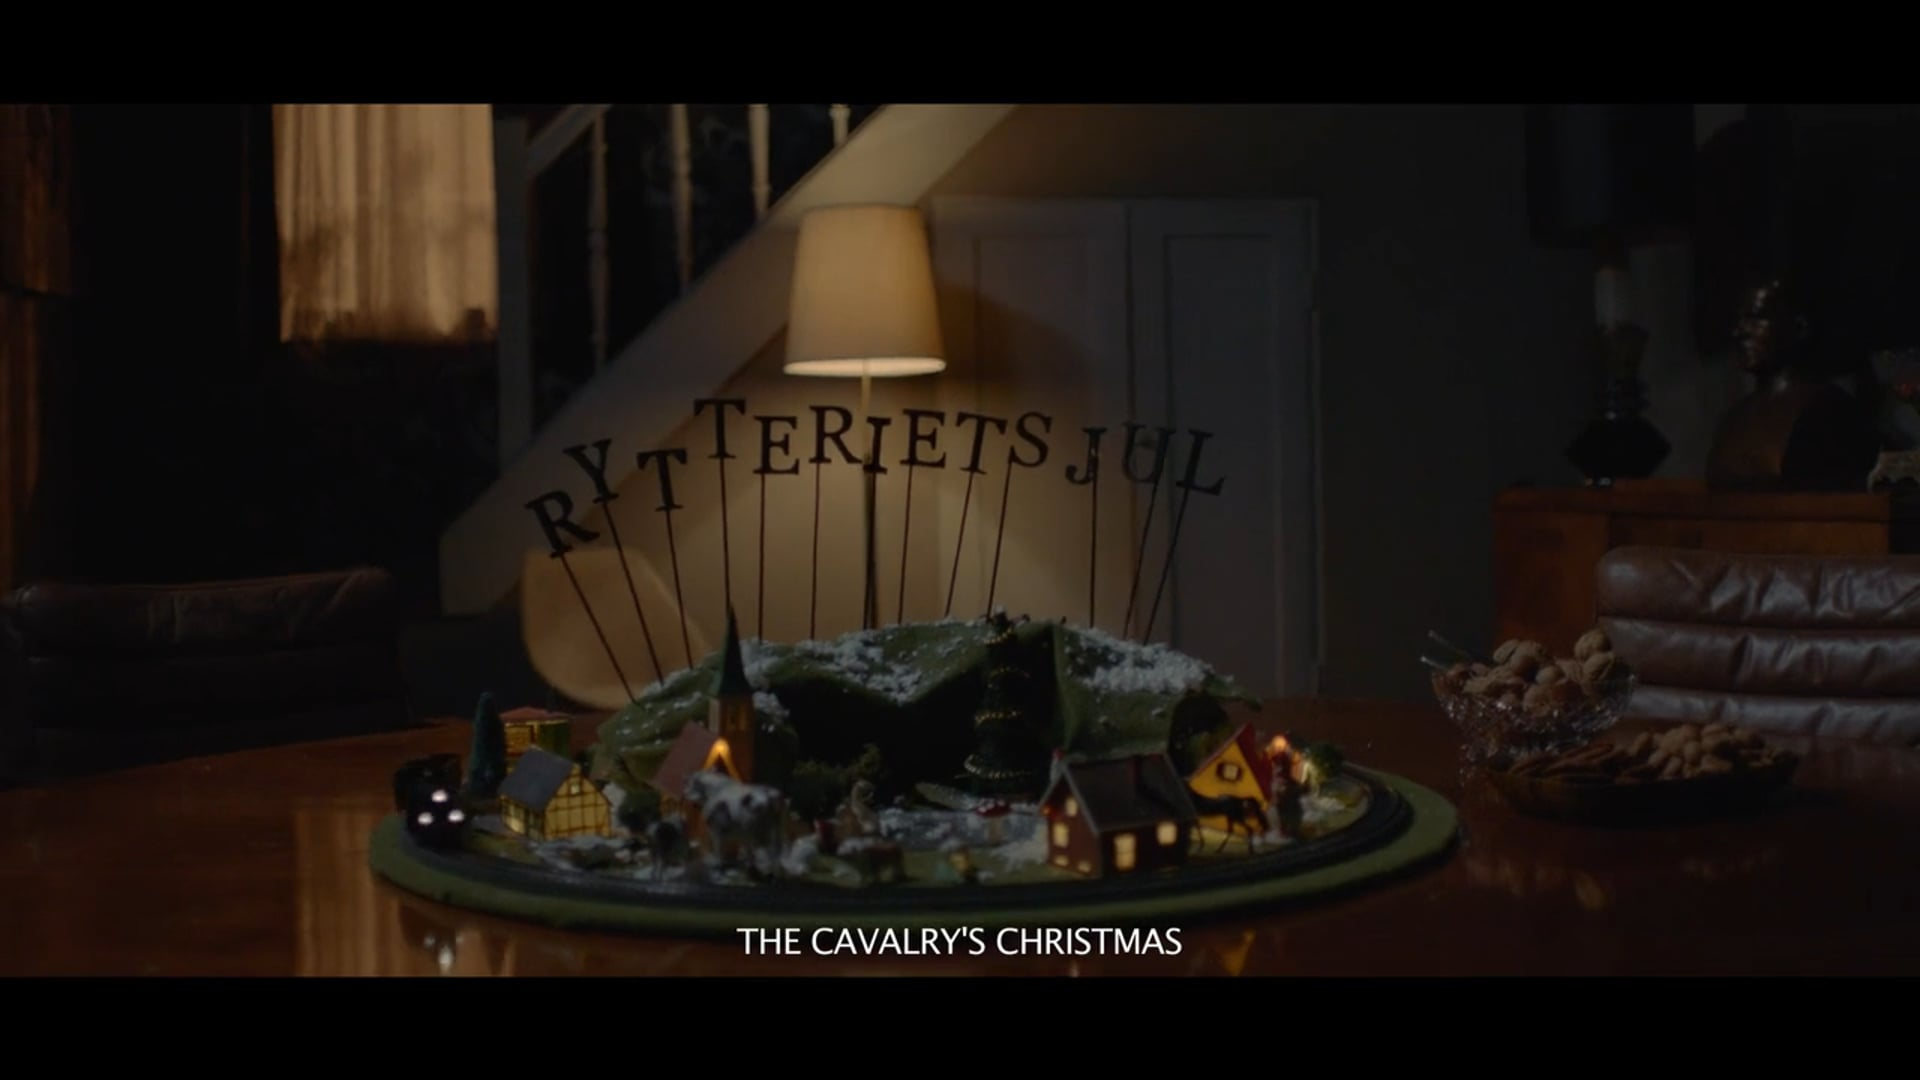 RYTTERIETS JUL (The Cavalry's Christmas) - Episode IV